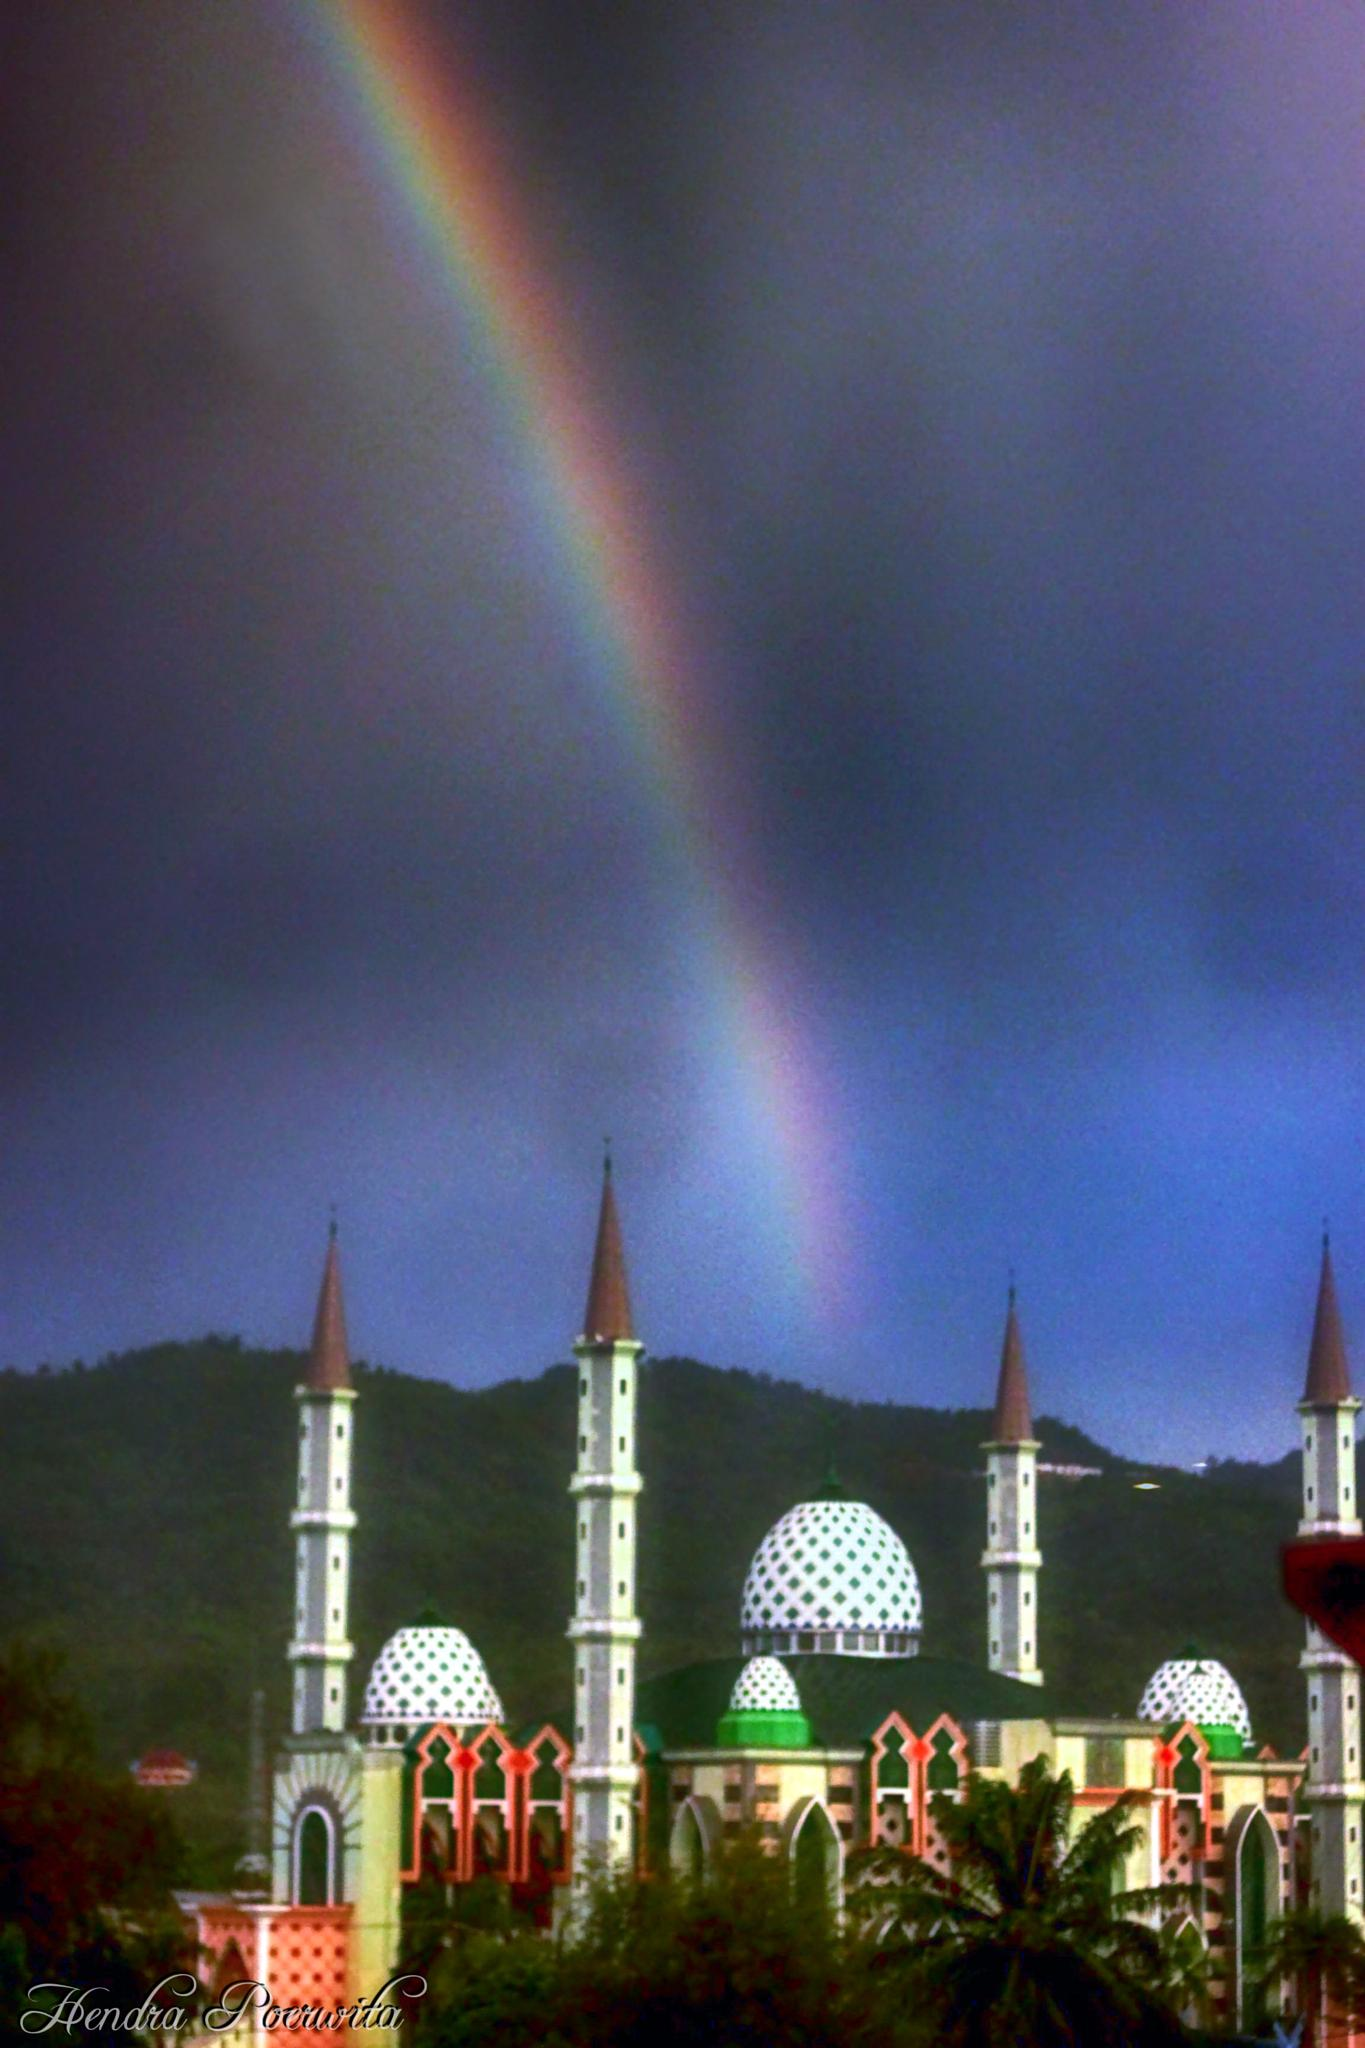 RAINBOW OVER THE MOSQUE by hendra.poerwita